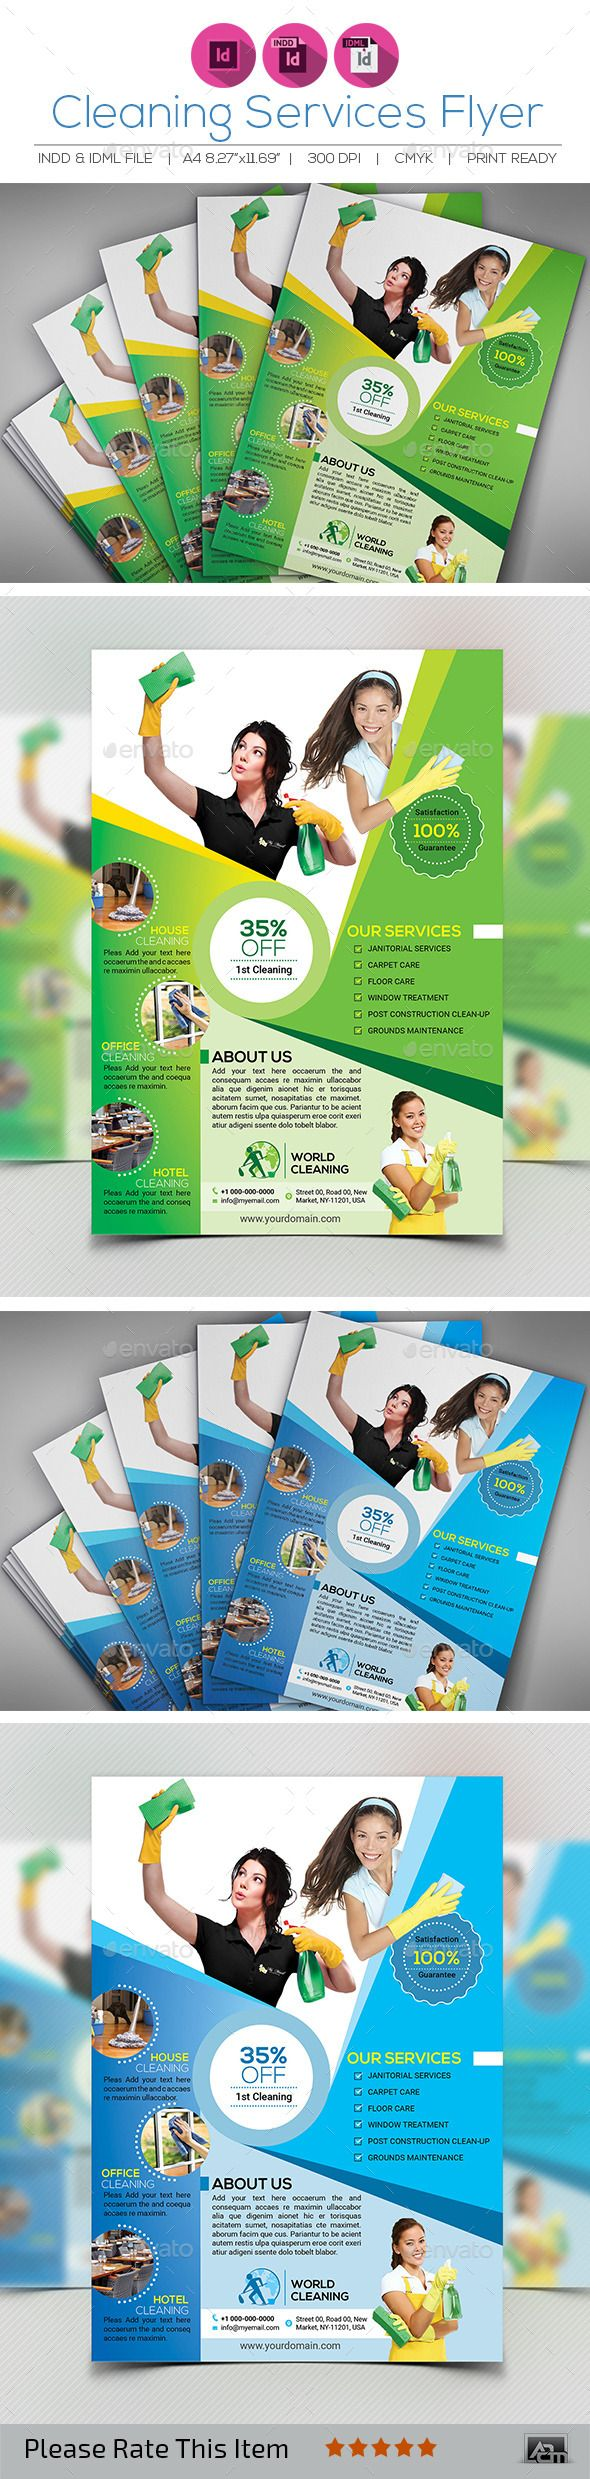 Pin By Best Graphic Design On Flyer Templates Pinterest Cleaning